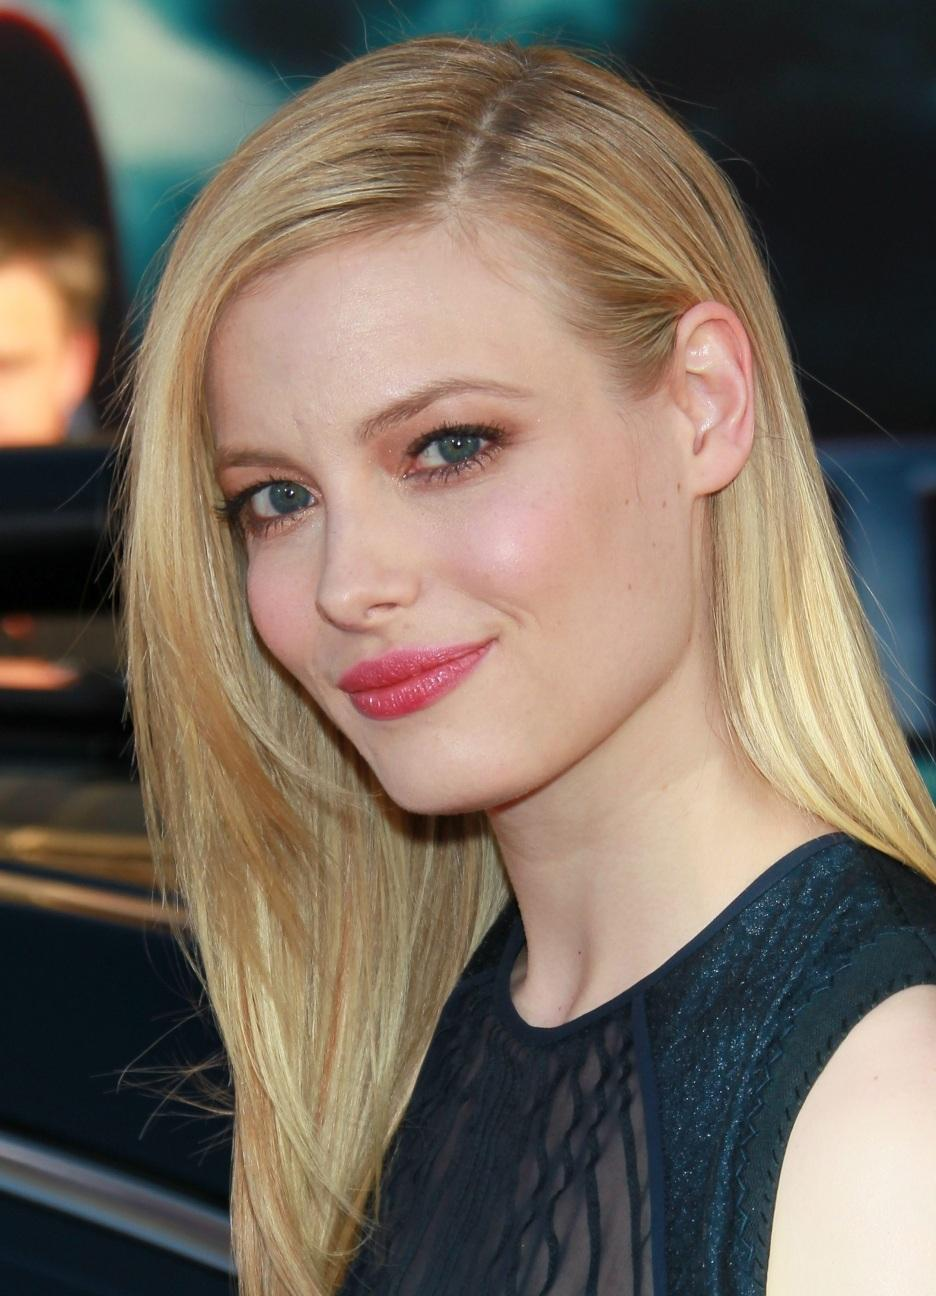 Gillian Jacobs Beautiful Blonde Hair Just A Pretty Celebrity